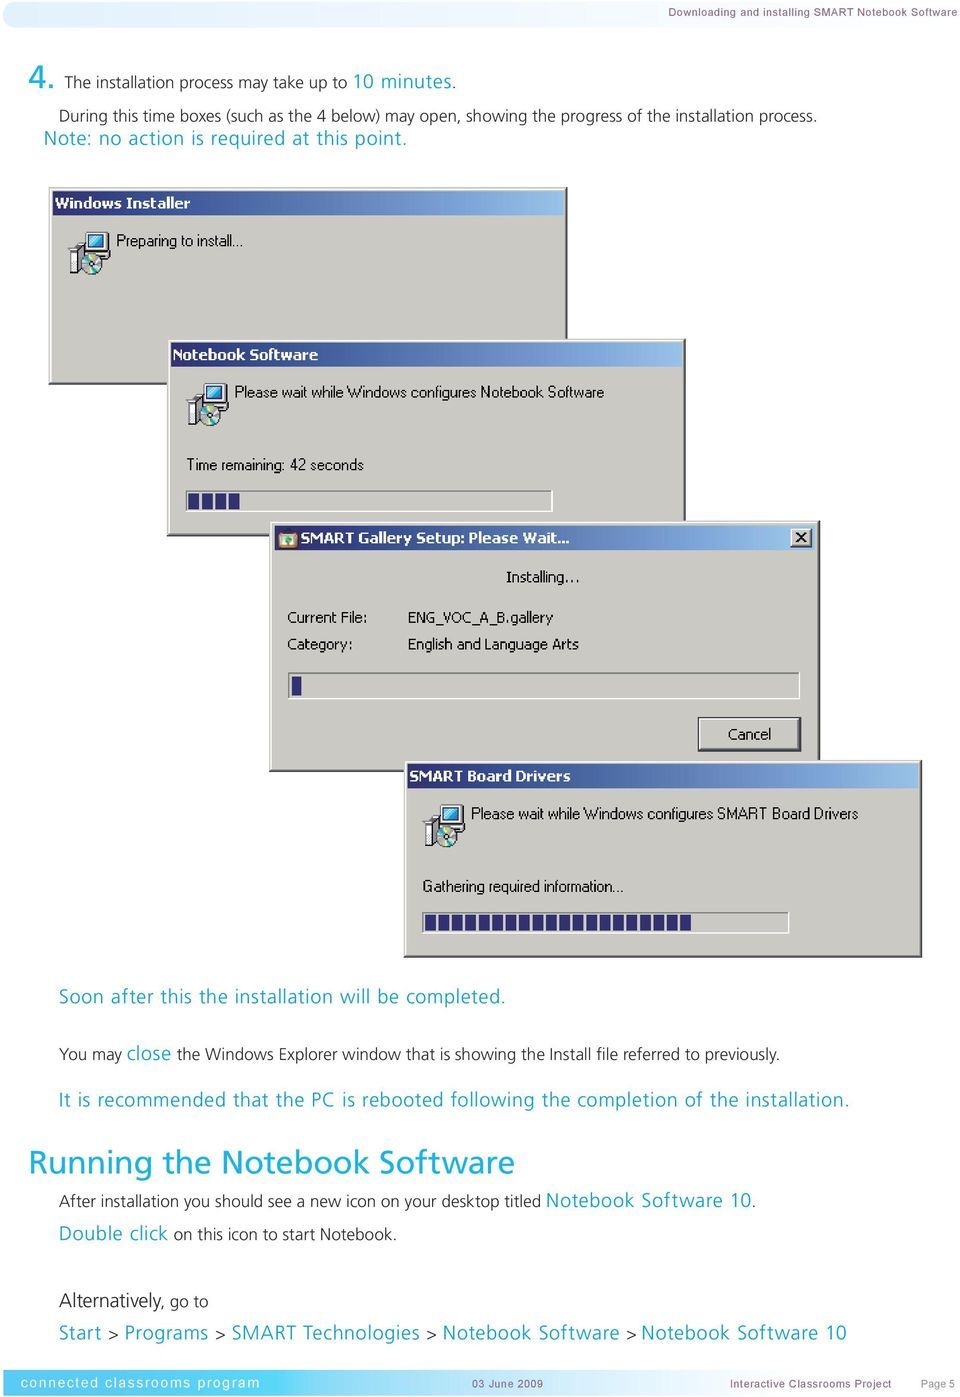 It is recommended that the PC is rebooted following the completion of the installation.